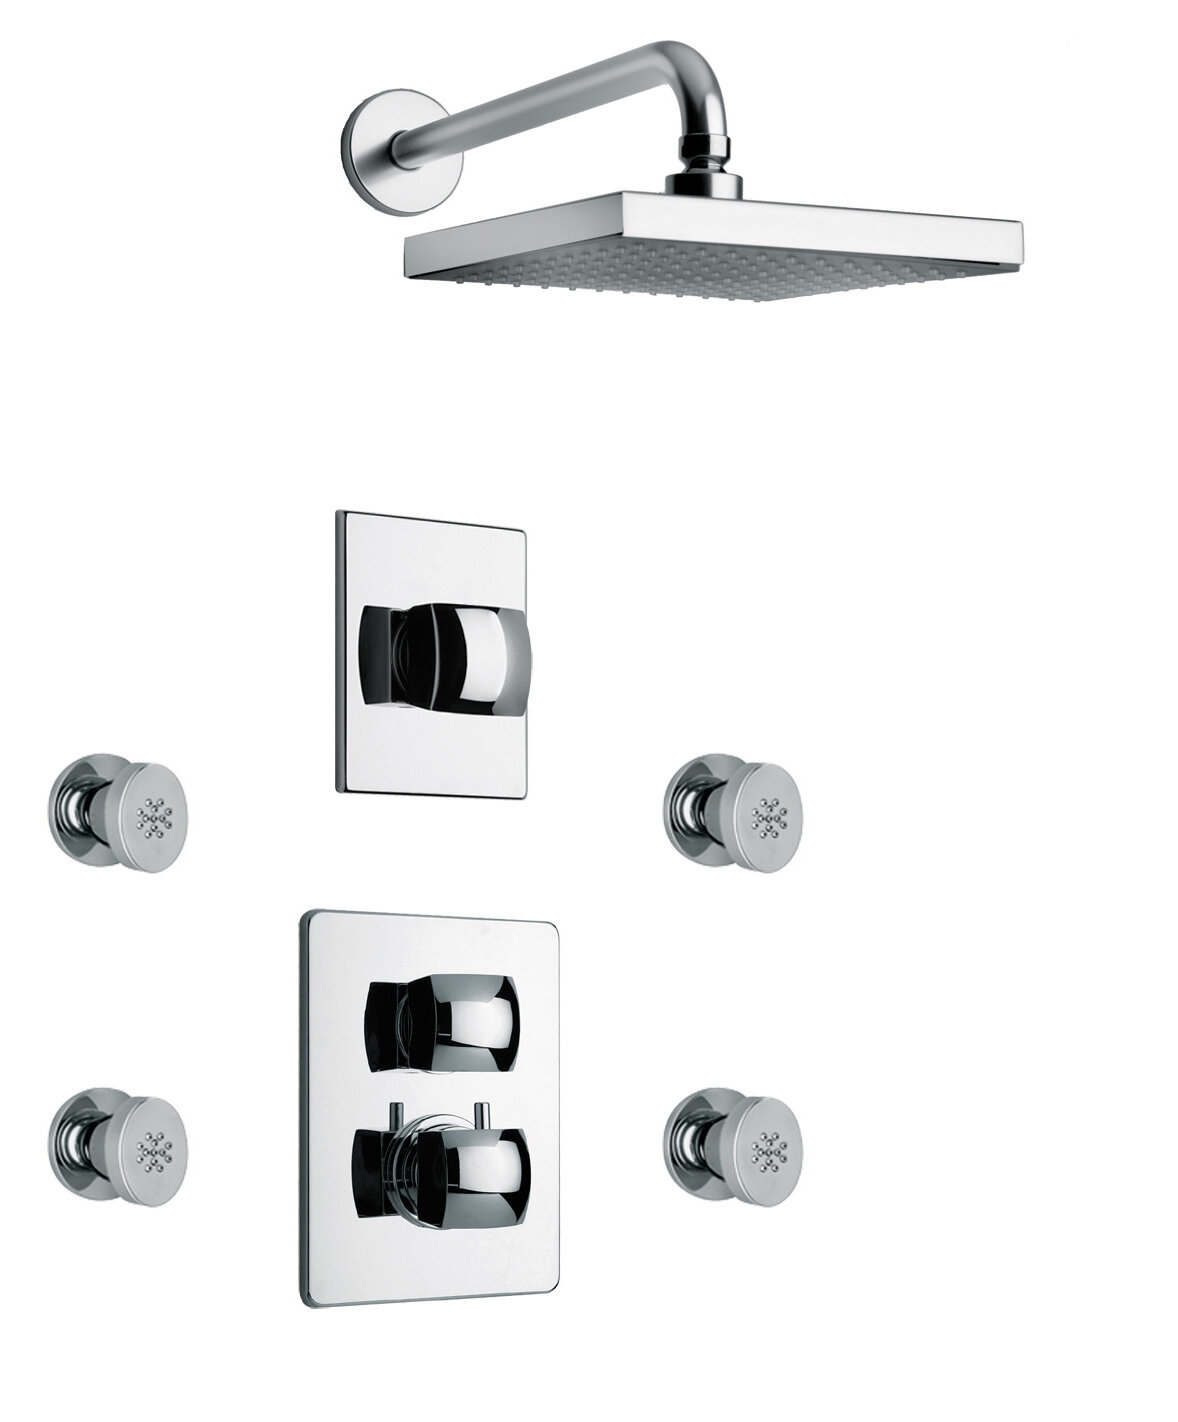 Latoscana Lady Thermostatic Tub And Shower Faucet With Valve Wayfair